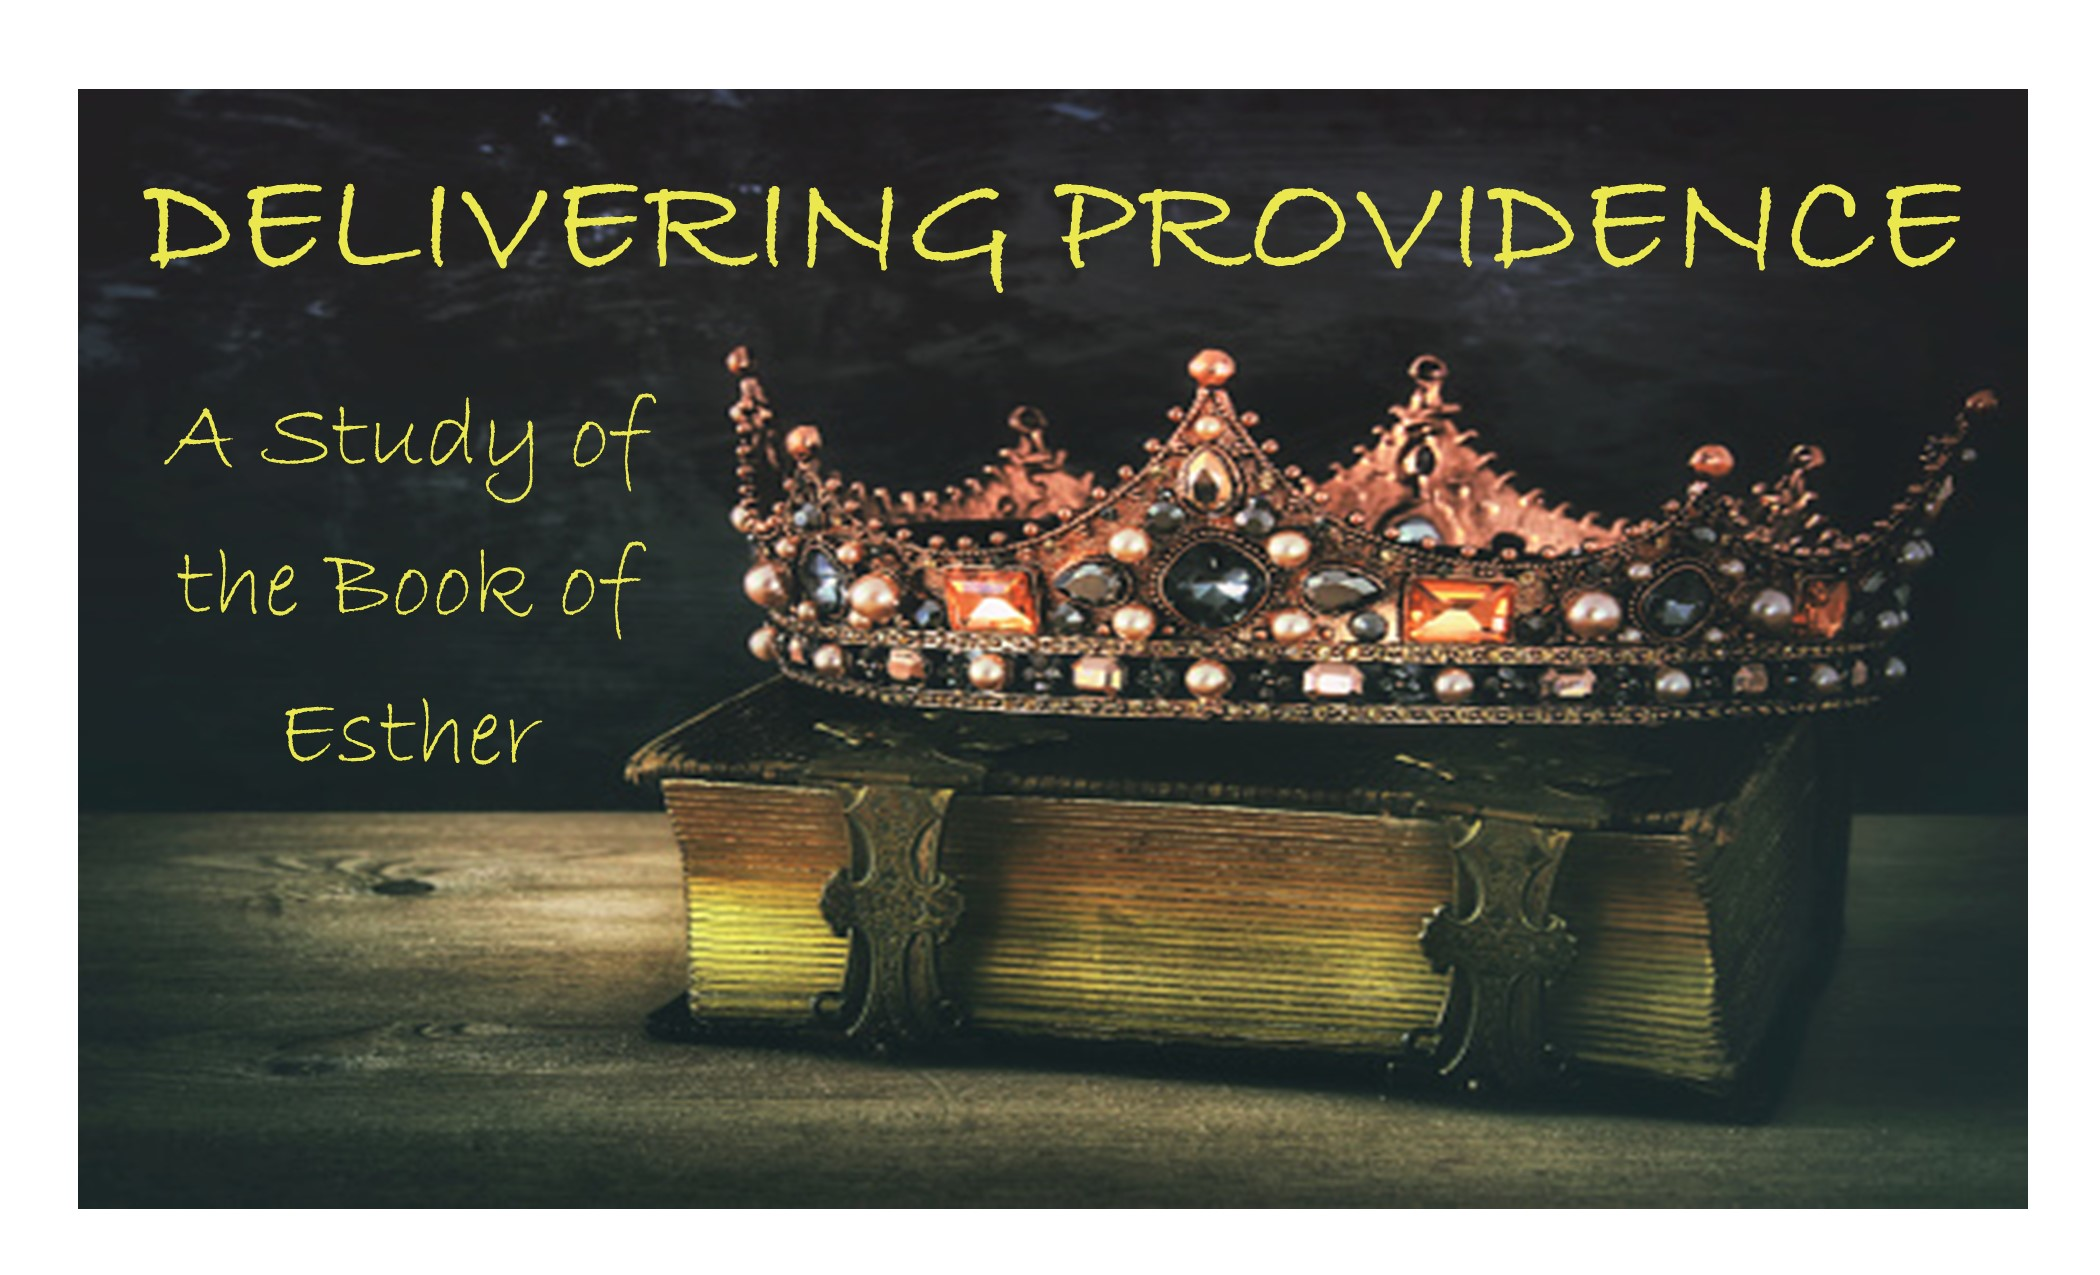 Delivering Providence: Honored by the King